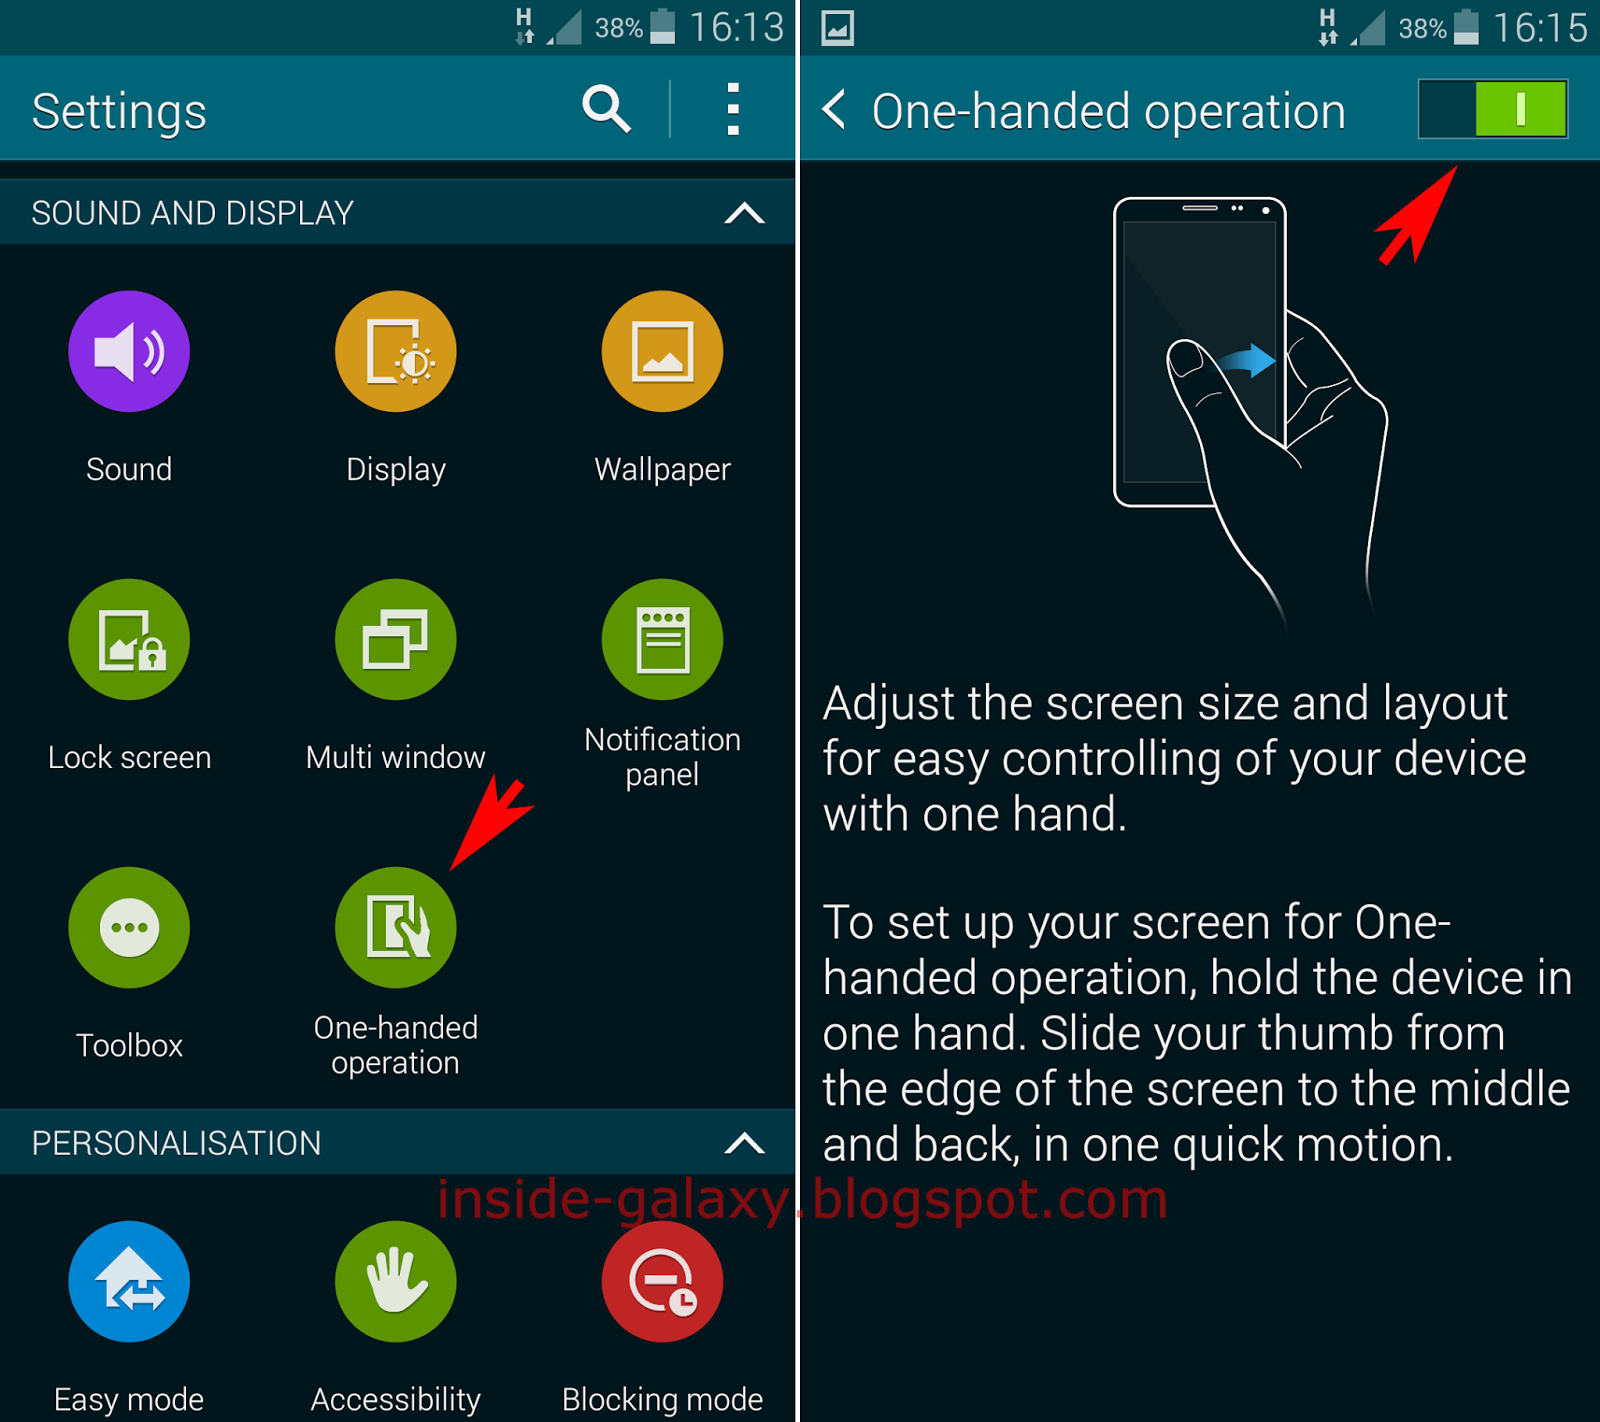 Samsung Galaxy S5: How to Enable and Use One-Handed